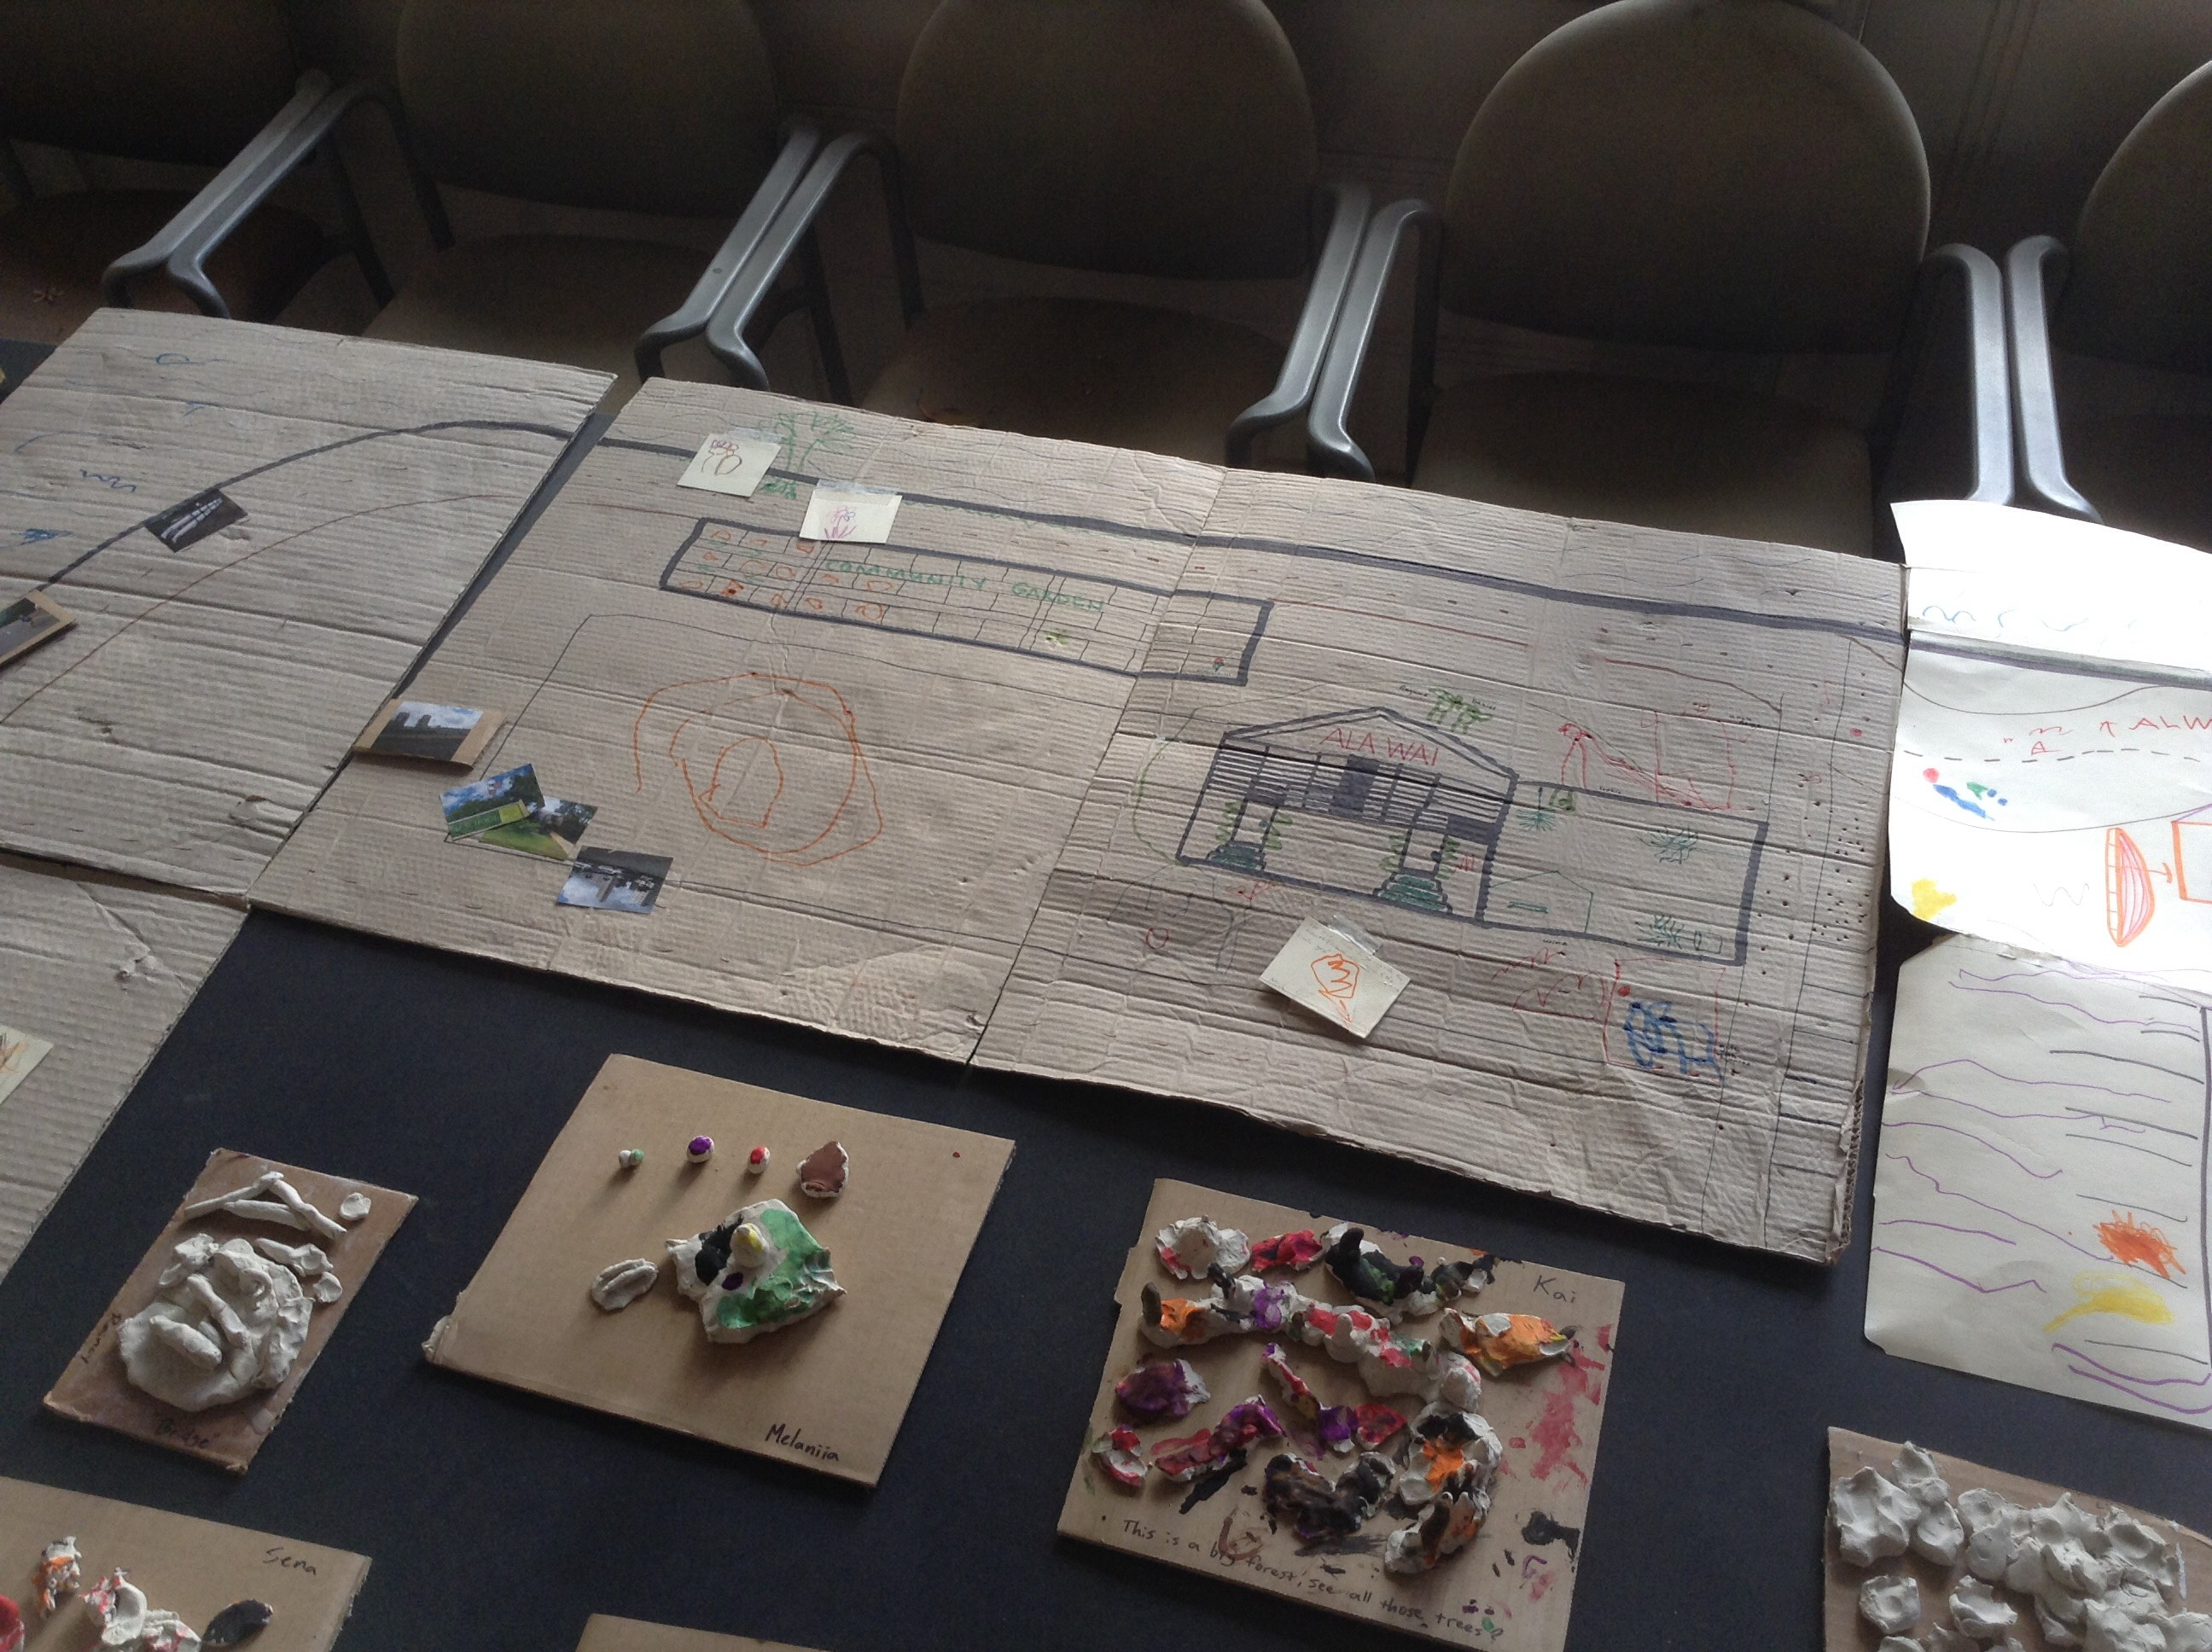 Ala Wai mapping and clay sculptures